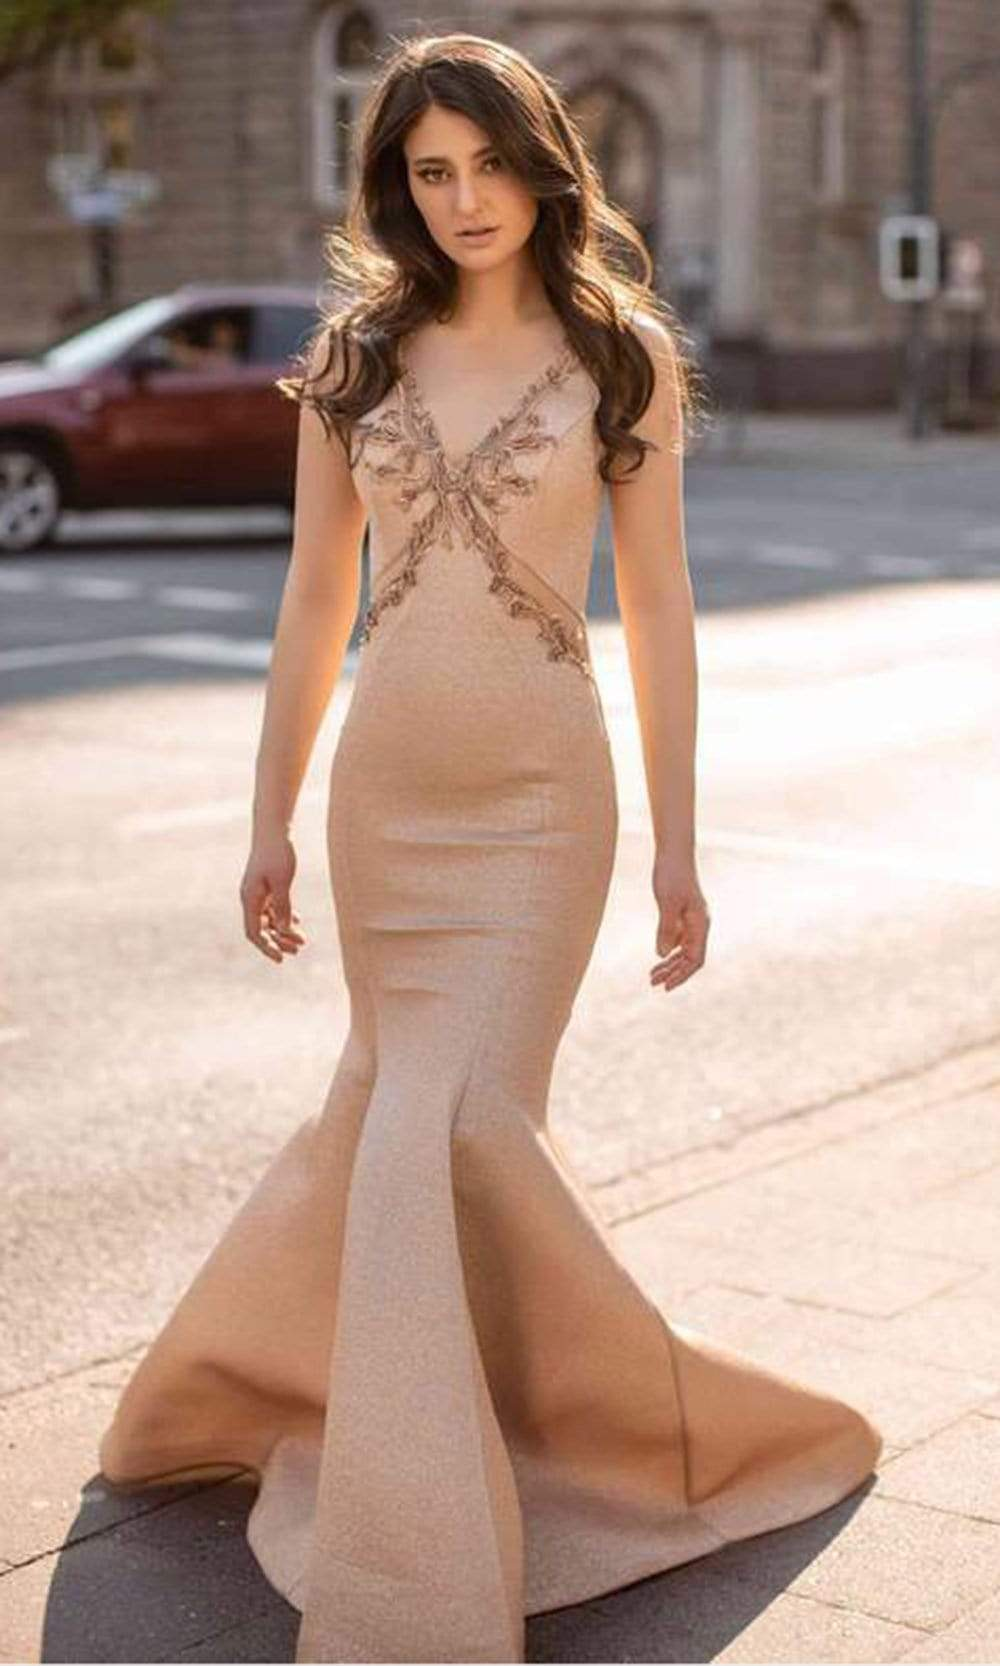 Chic and Holland - AN3122 V Neck Flawless Mermaid Gown from Chic and Holland